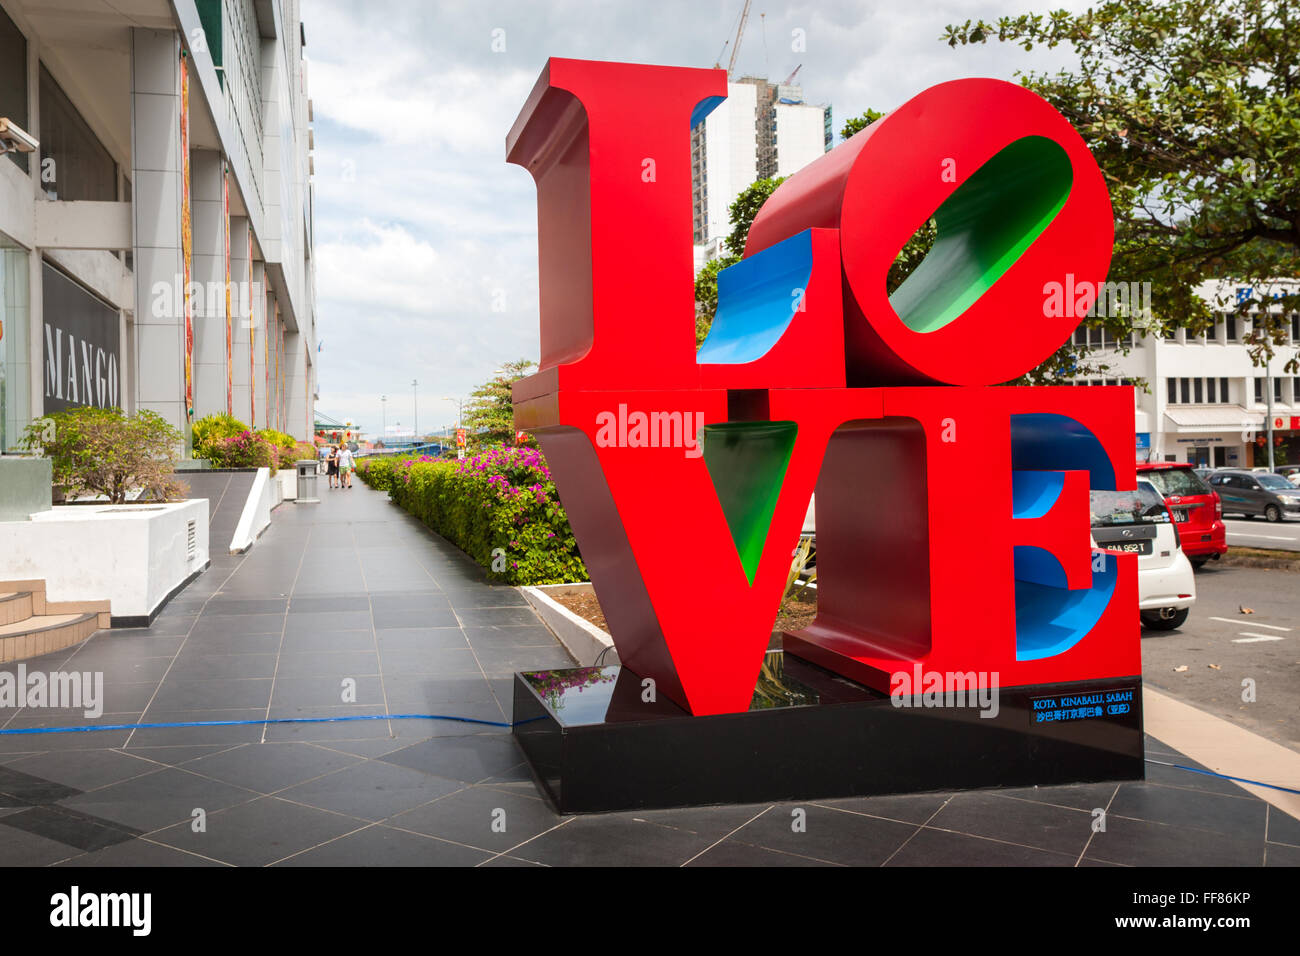 LOVE sculpture based on the art work by Robert Indiana. LOVE is an iconic Pop Art image. Outside Suria Sabah, Kota - Stock Image